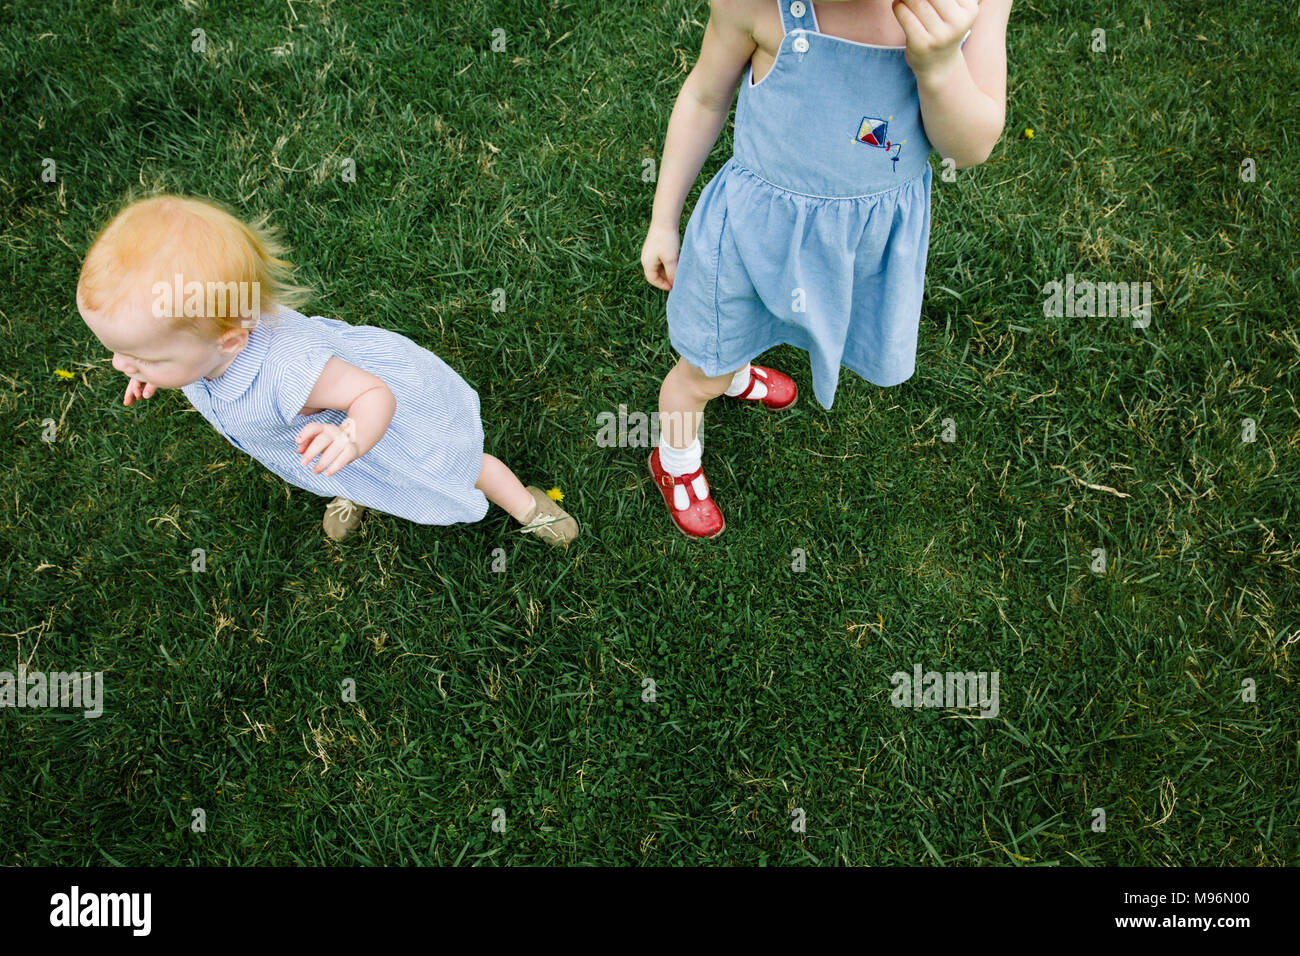 Baby and girl standing in field - Stock Image